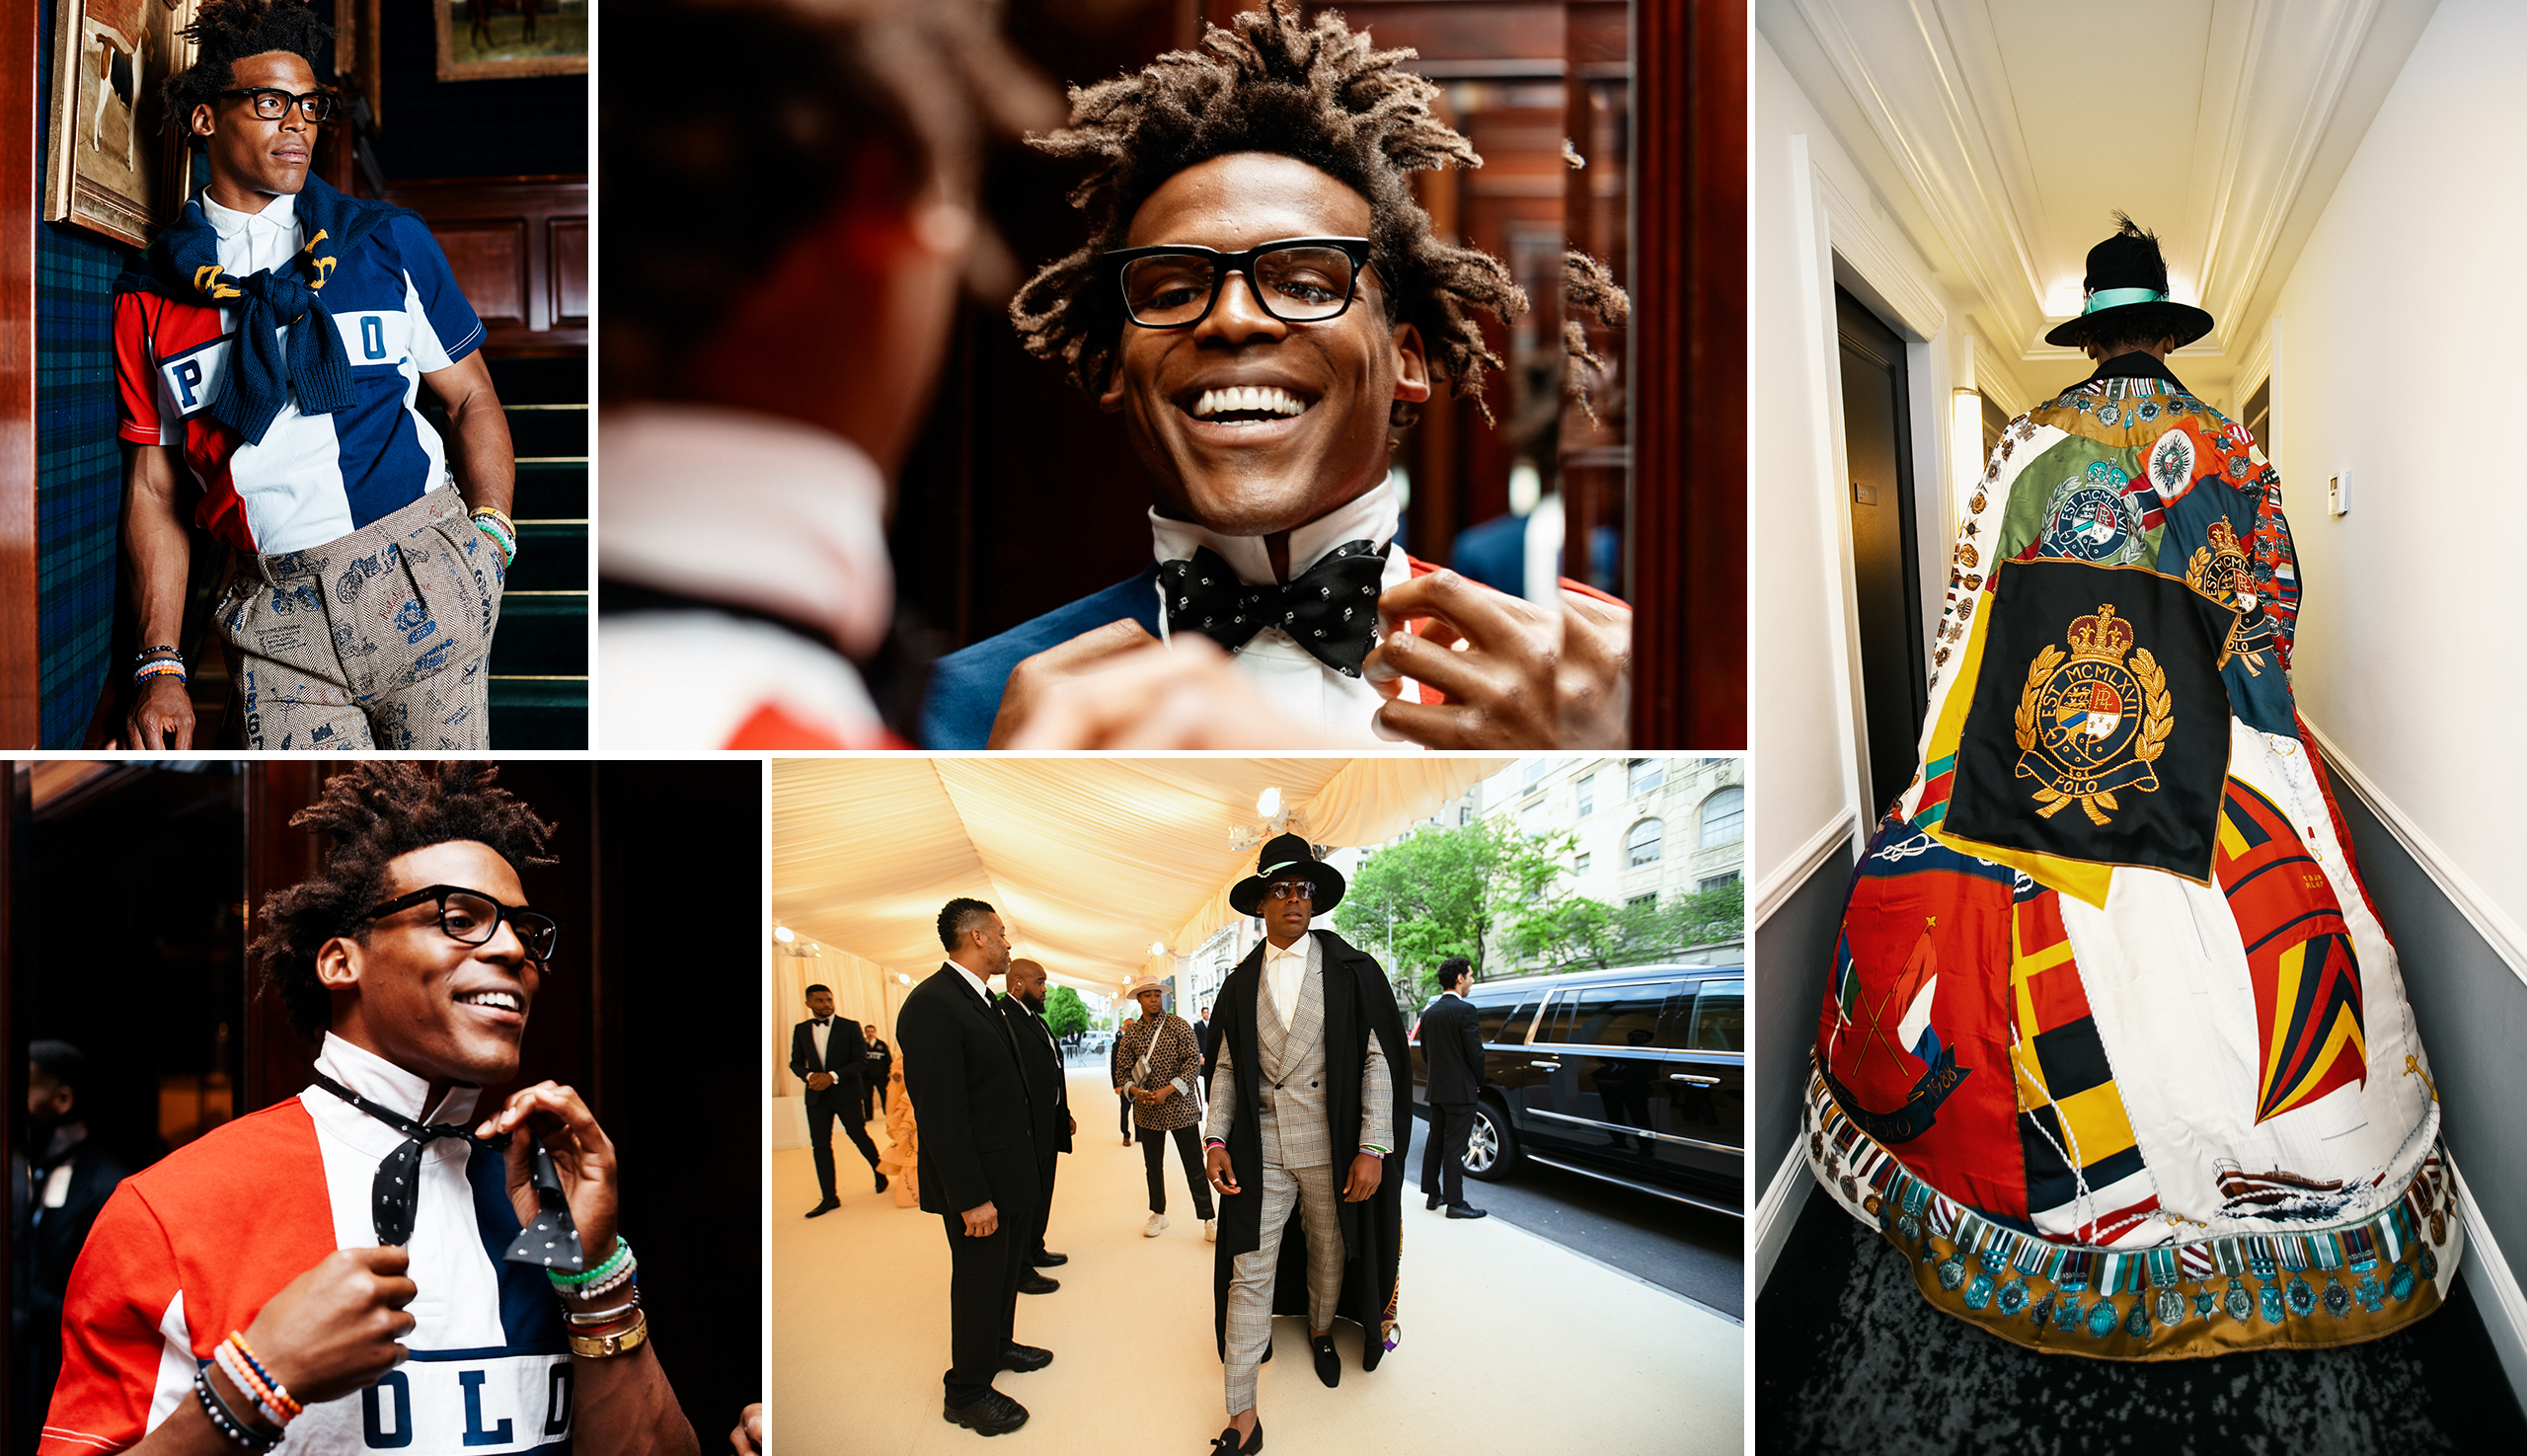 Highlights from Cam's visit to RL HQ, his trip to our Madison Ave. flagship, and the 2019 Met Gala